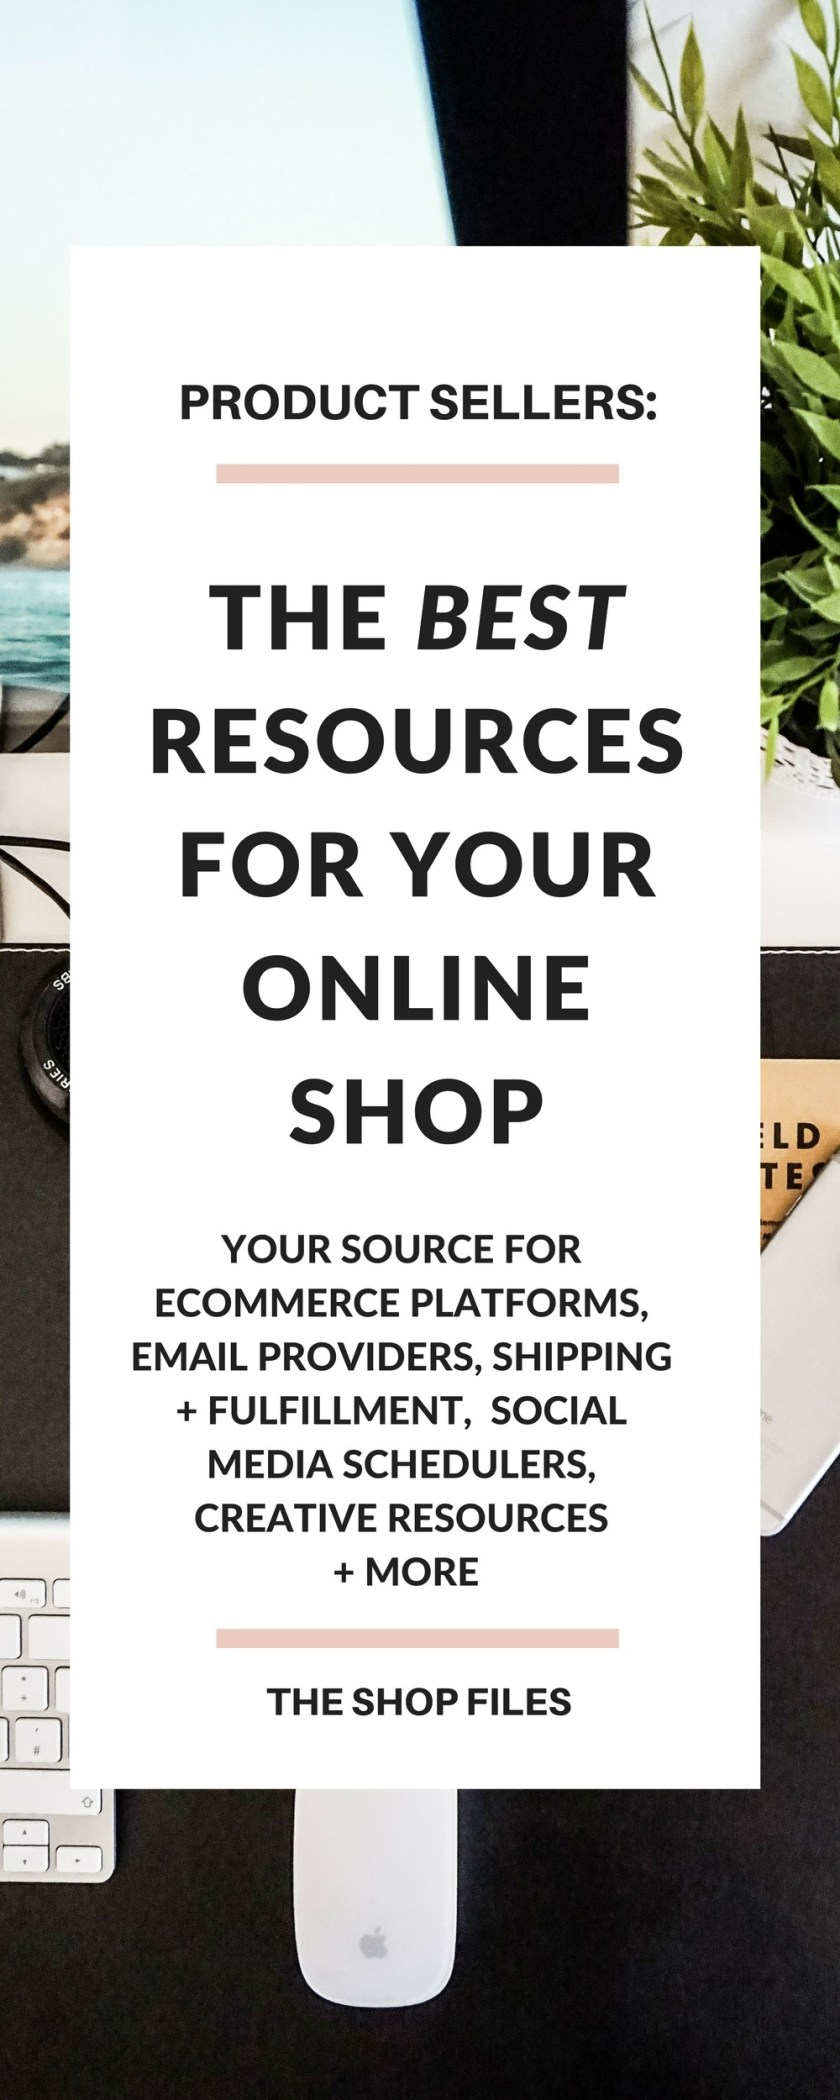 20+ Business Resources and tools for starting an online shop - Your source for ecommerce platform solutions, email service providers, shipping + fulfillment, social media scheduling, pinterest marketing strategy and more